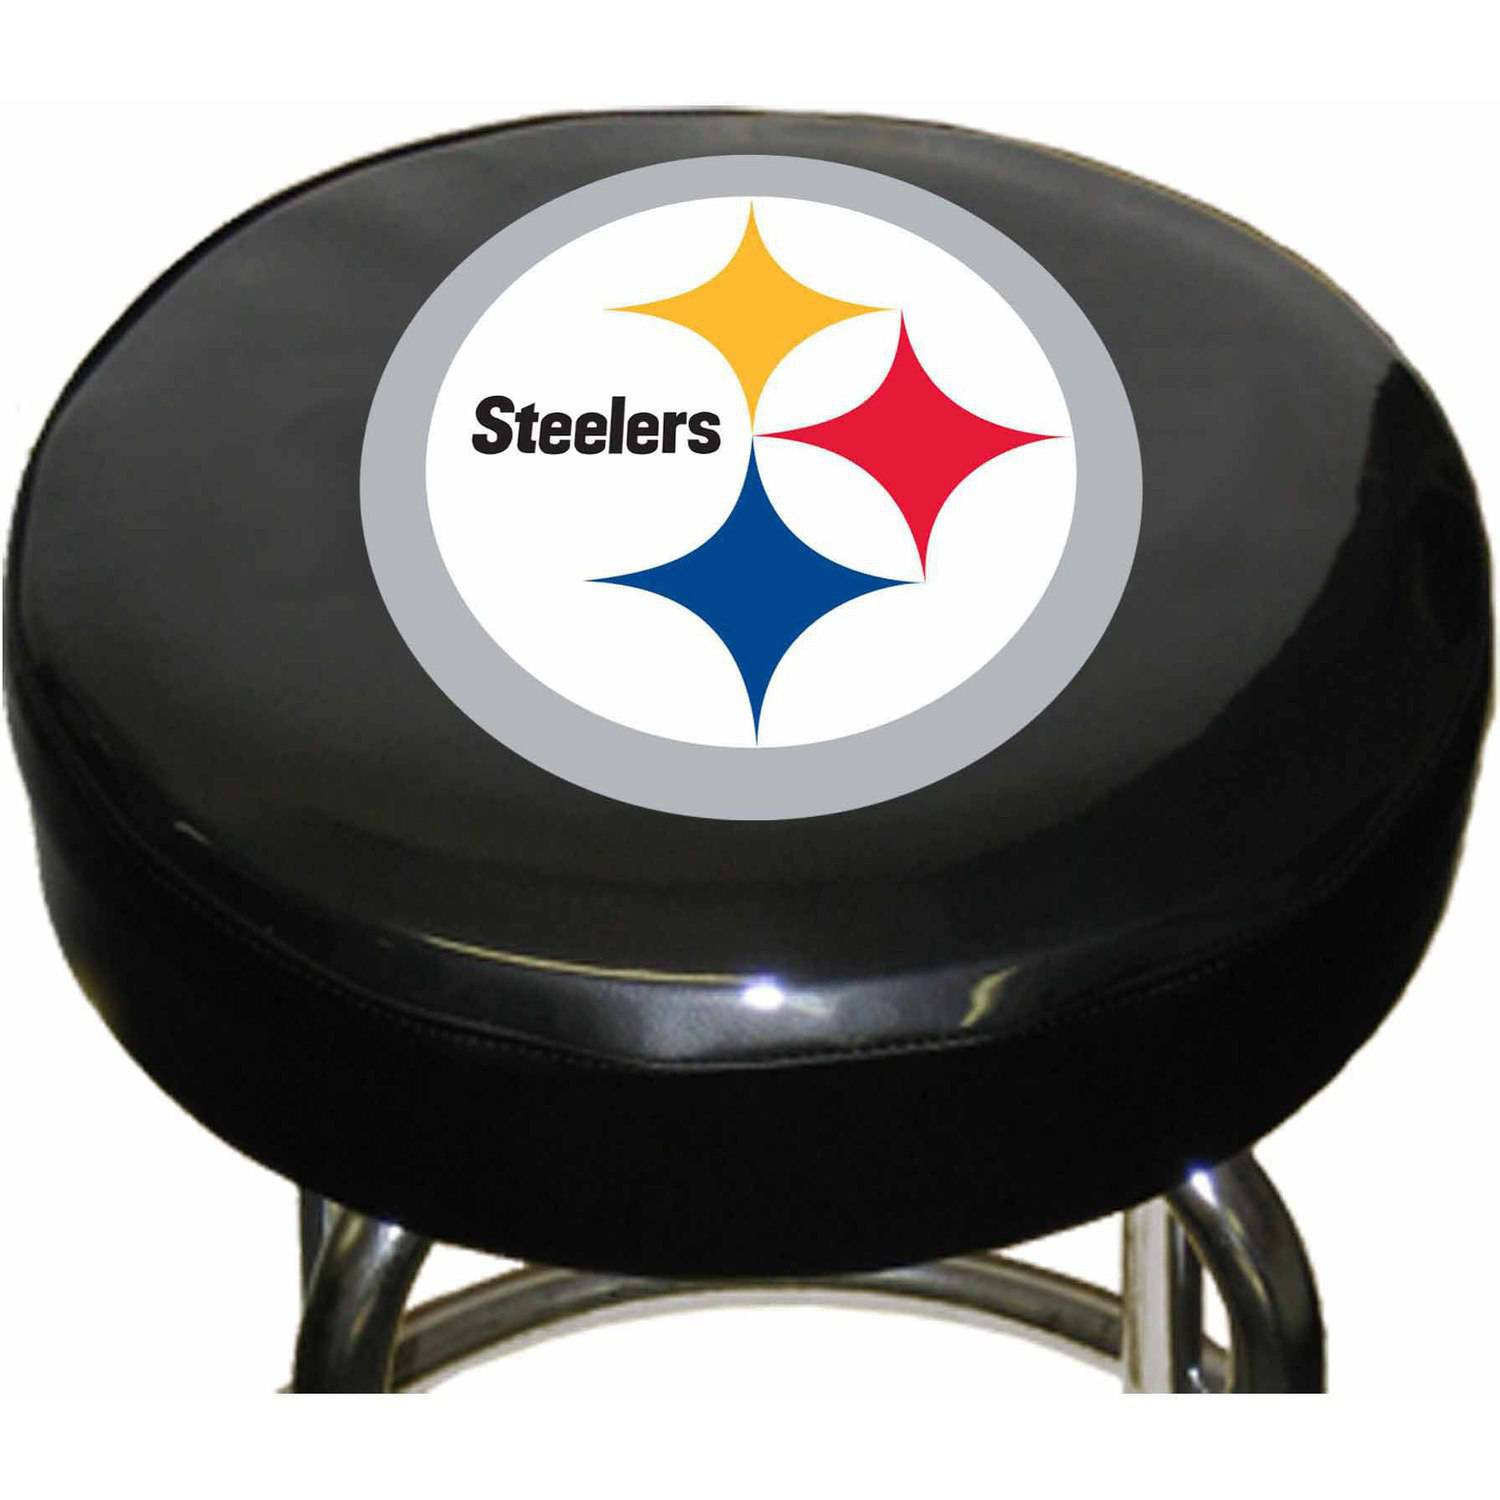 NFL Pittsburgh Steelers Bar Stool Cover  sc 1 st  Walmart & NFL Pittsburgh Steelers Bar Stool Cover - Walmart.com islam-shia.org